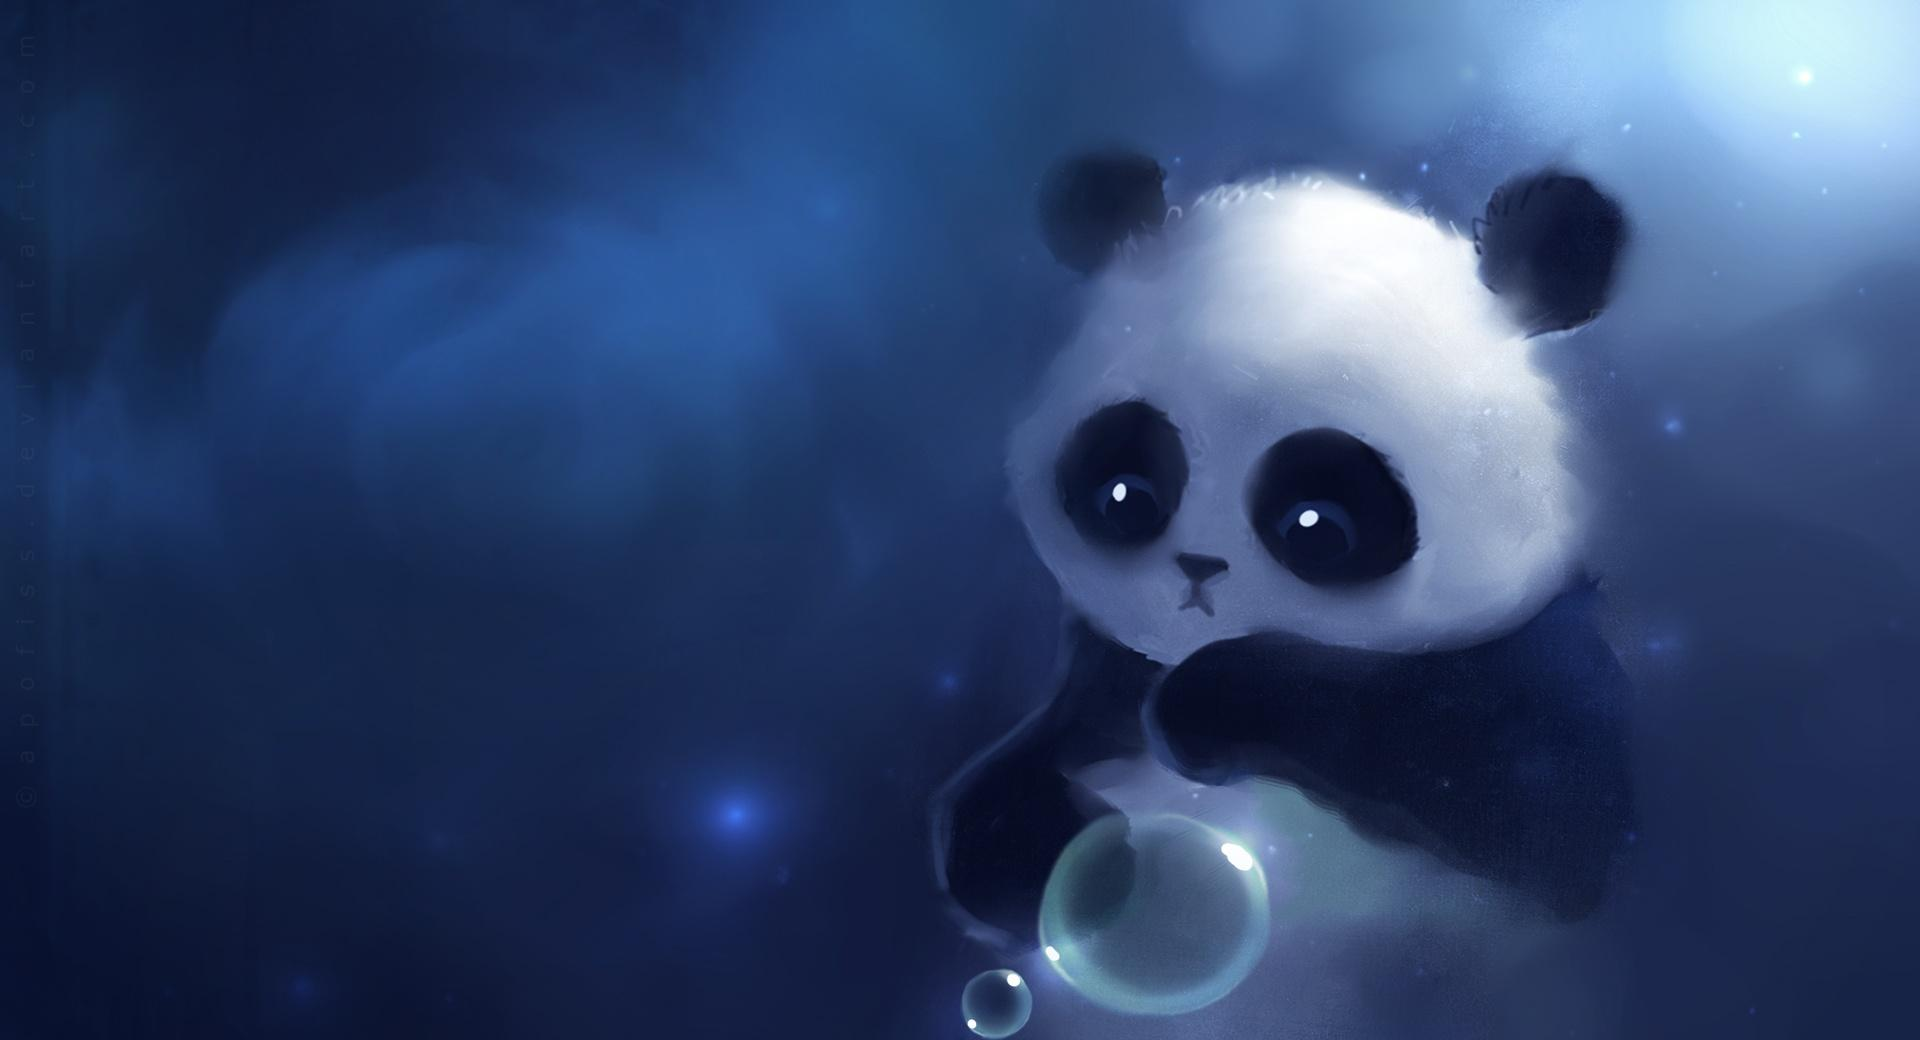 Sad Panda Painting wallpapers HD quality